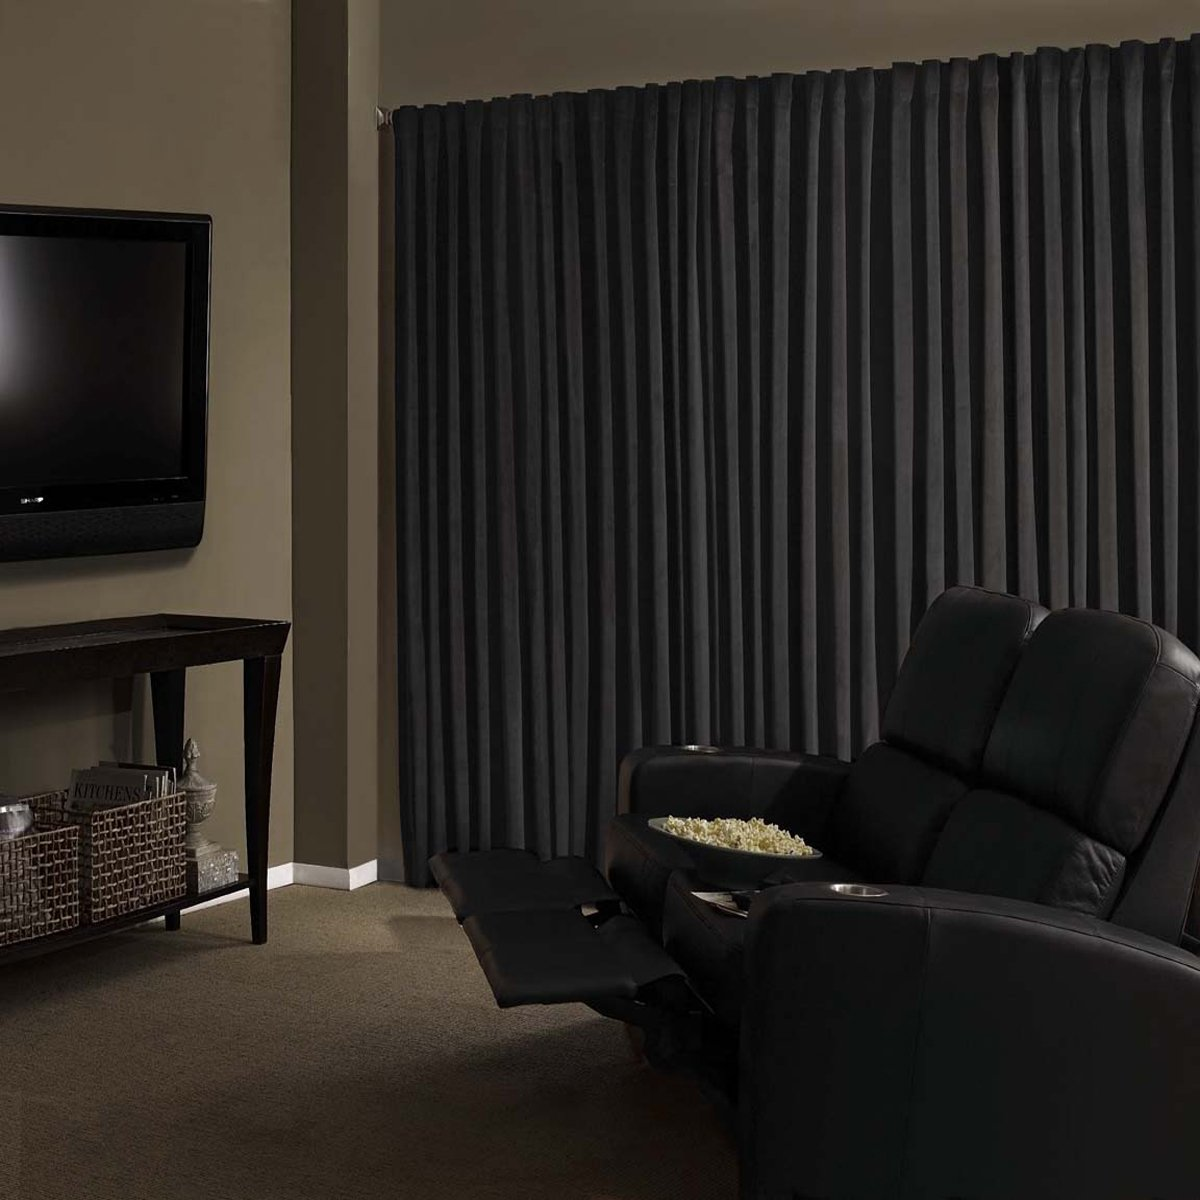 Black Curtains Part - 37: Amazon.com: Absolute Zero 11718050X084BK Velvet Blackout Home Theater  50-Inch By 84-Inch Single Curtain Panel, Black: Home U0026 Kitchen